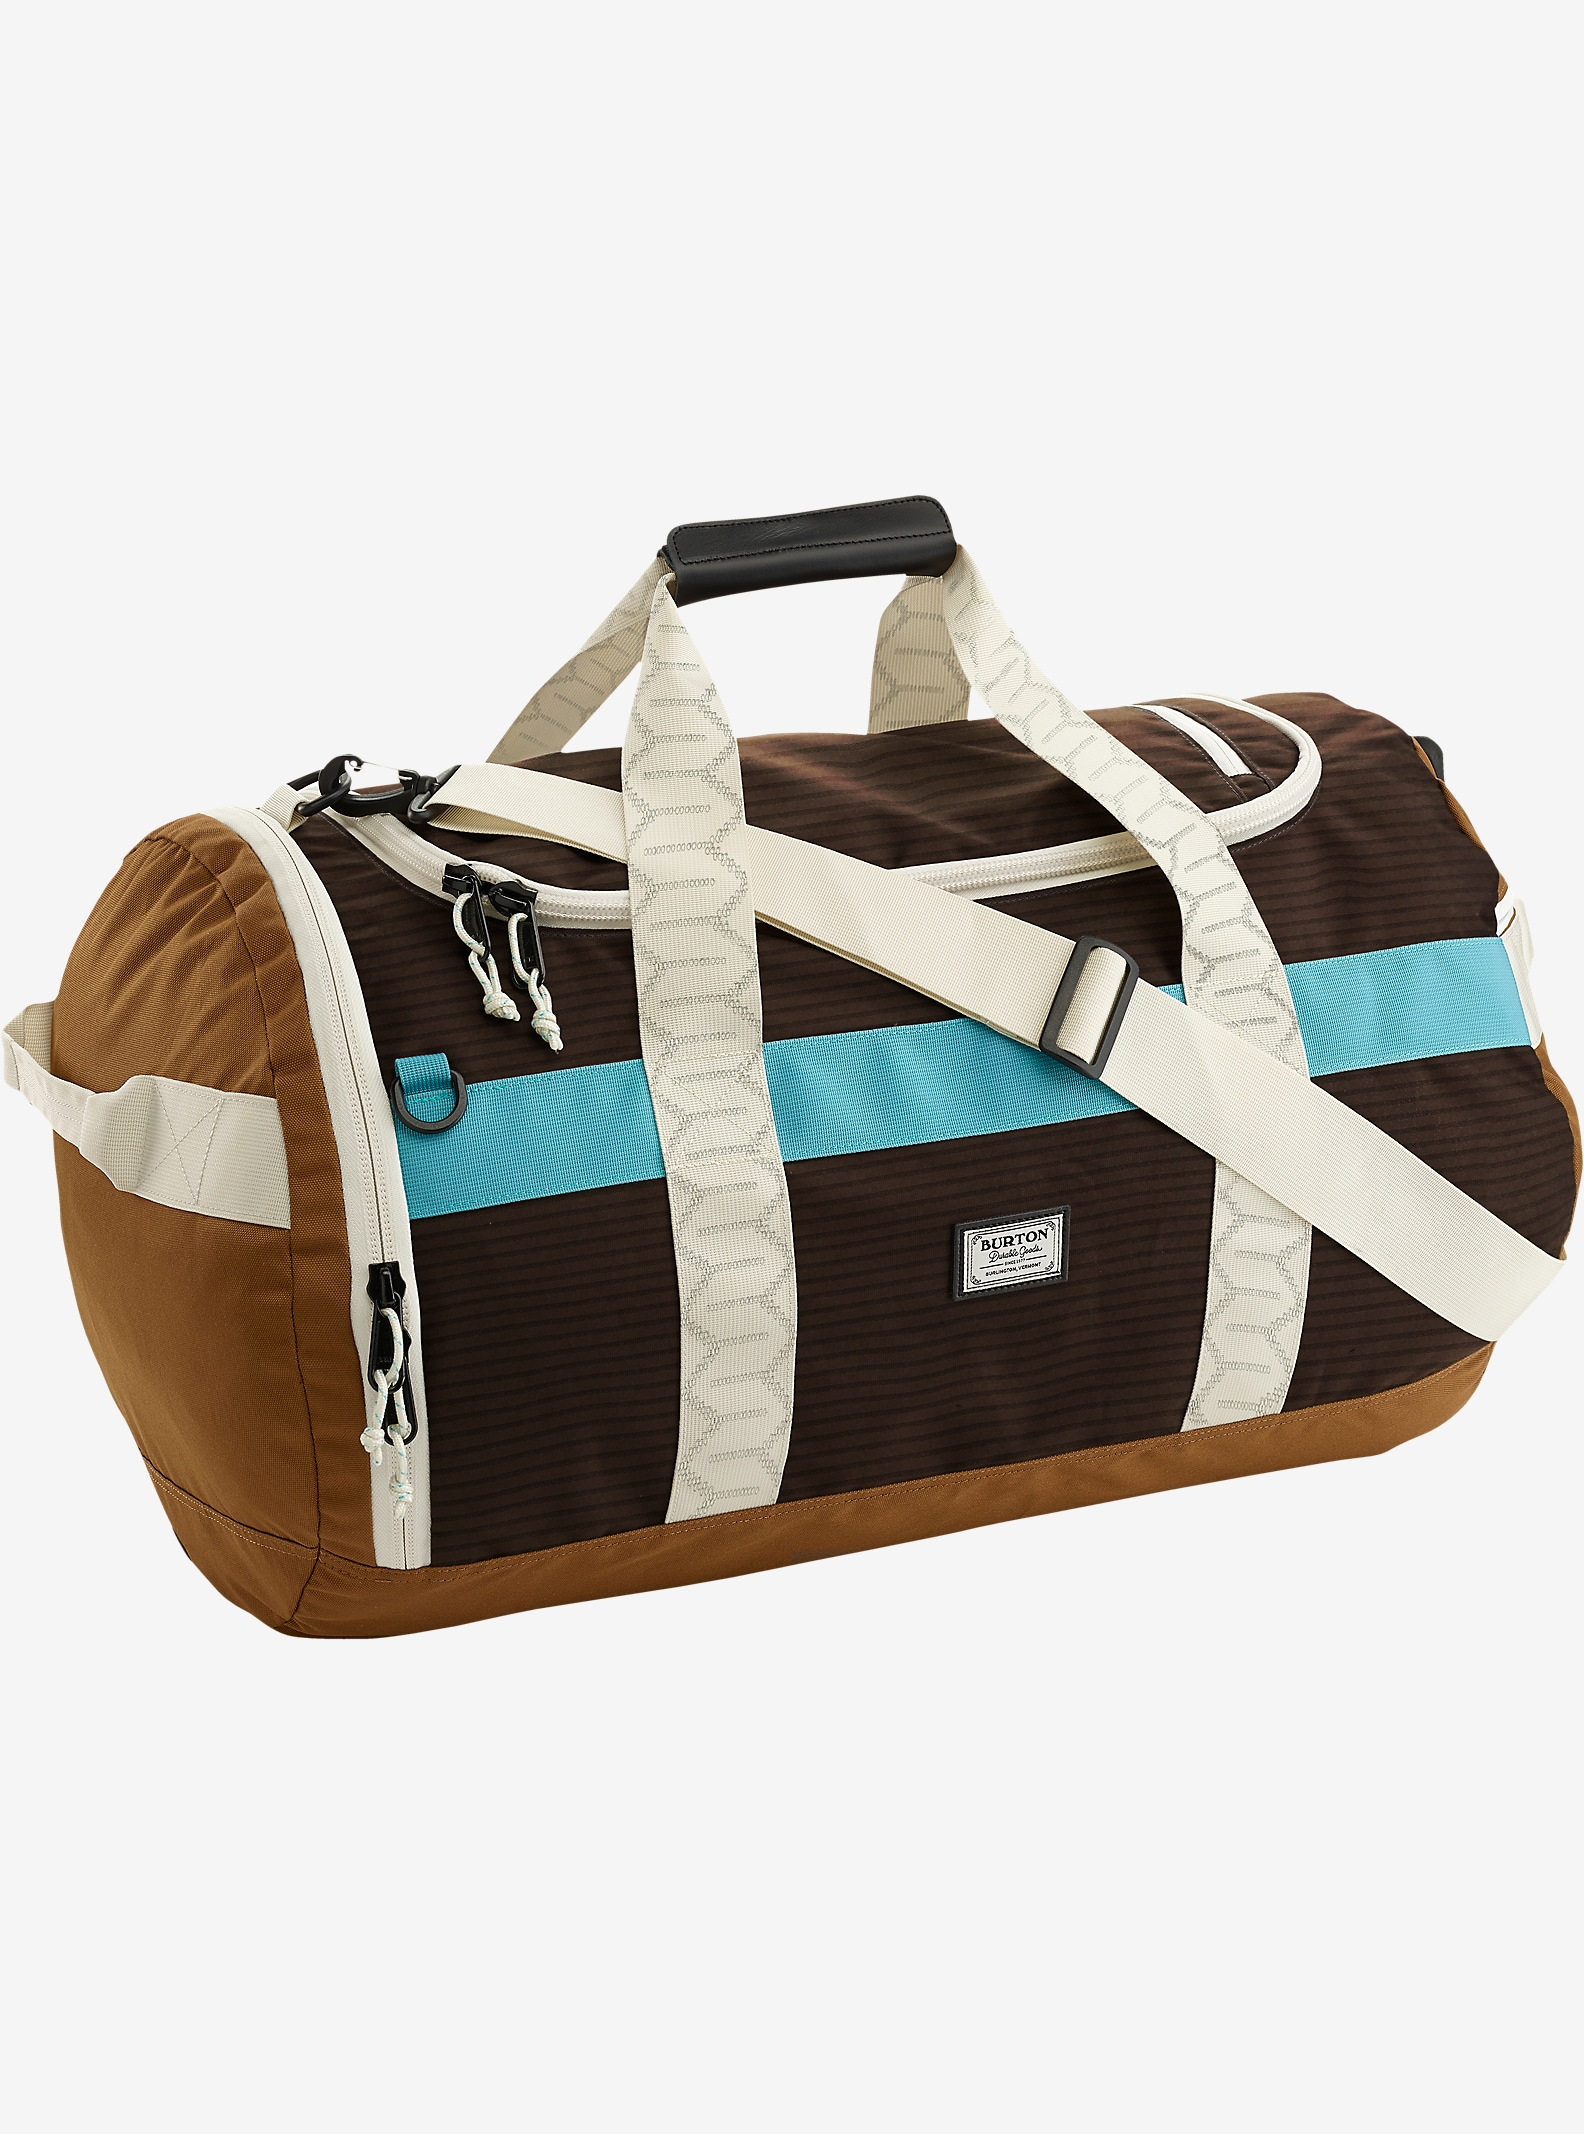 Burton Backhill Duffel Bag Medium 70L shown in Beaver Tail Crinkle [bluesign® Approved]